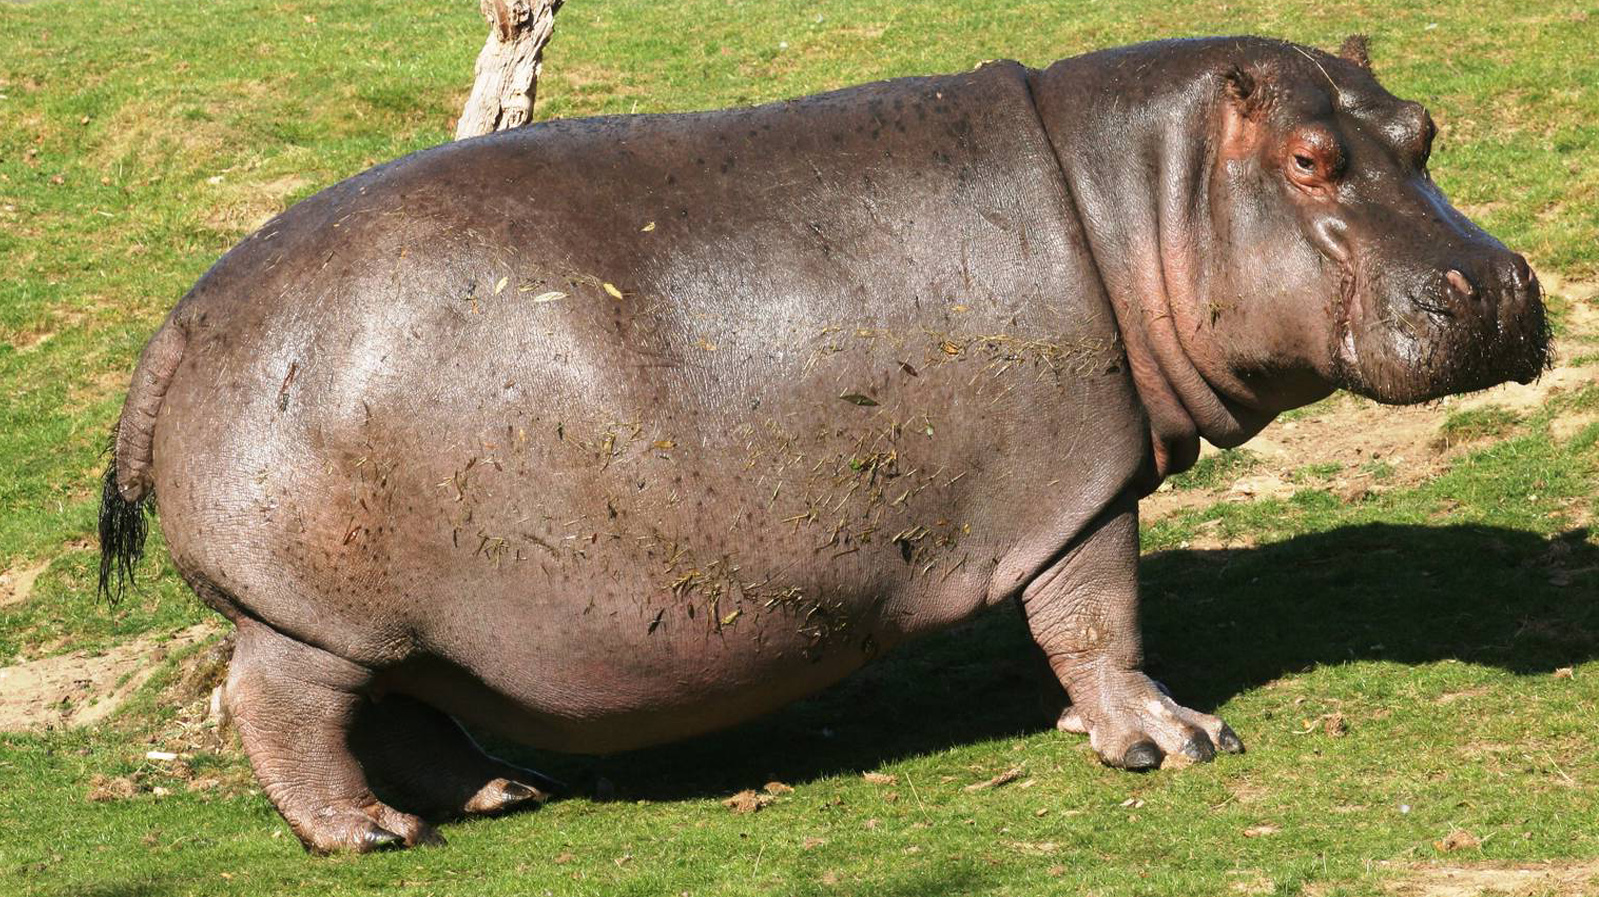 Fat Hippopotamus on a Lawn